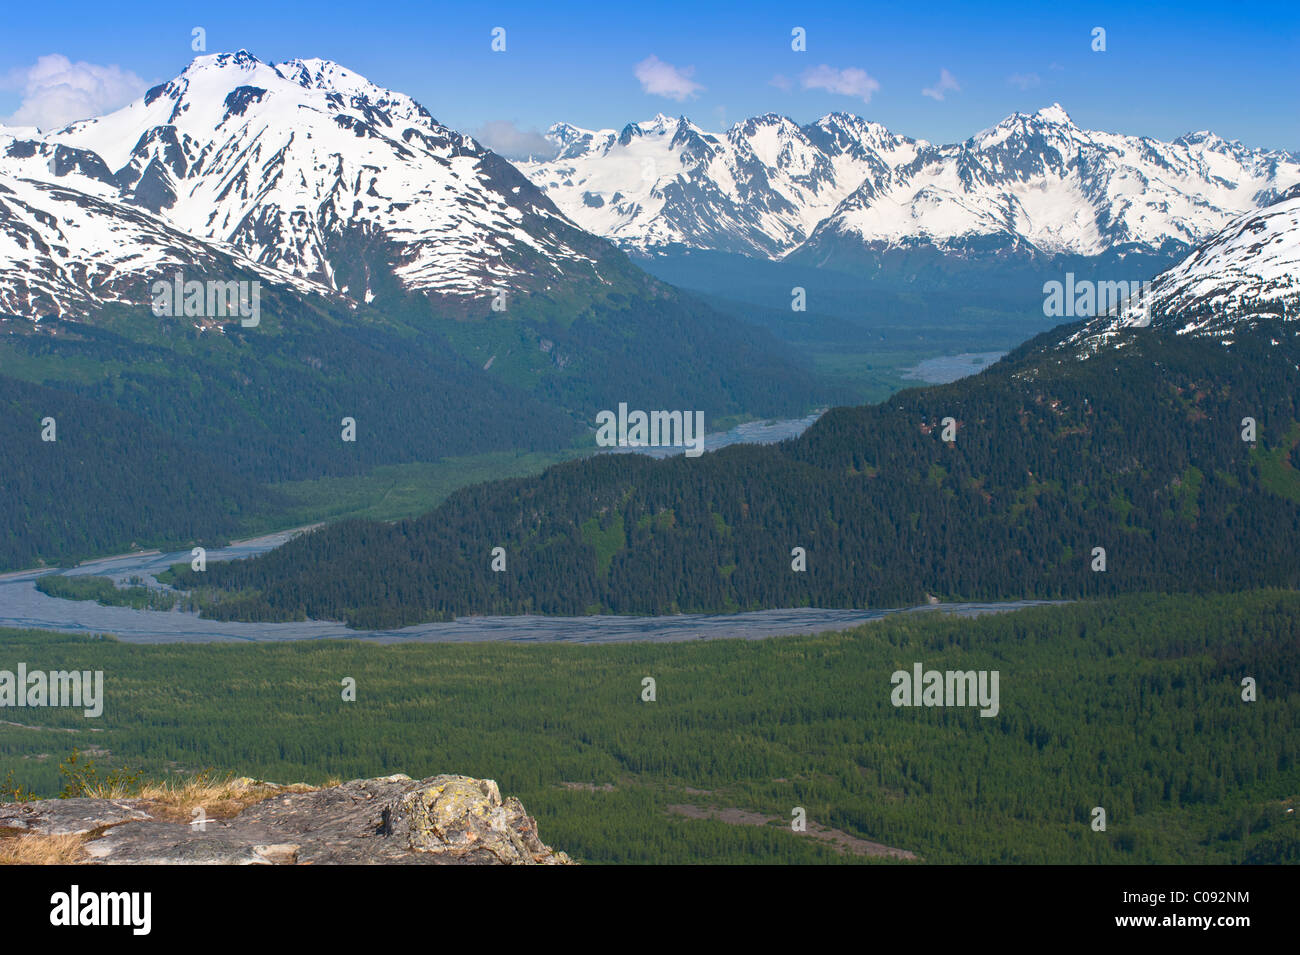 Scenic view of Resurrection Valley, Harding Ice Field trail in Kenai Fjords National Park, Kenai Peninsula, Alaska - Stock Image